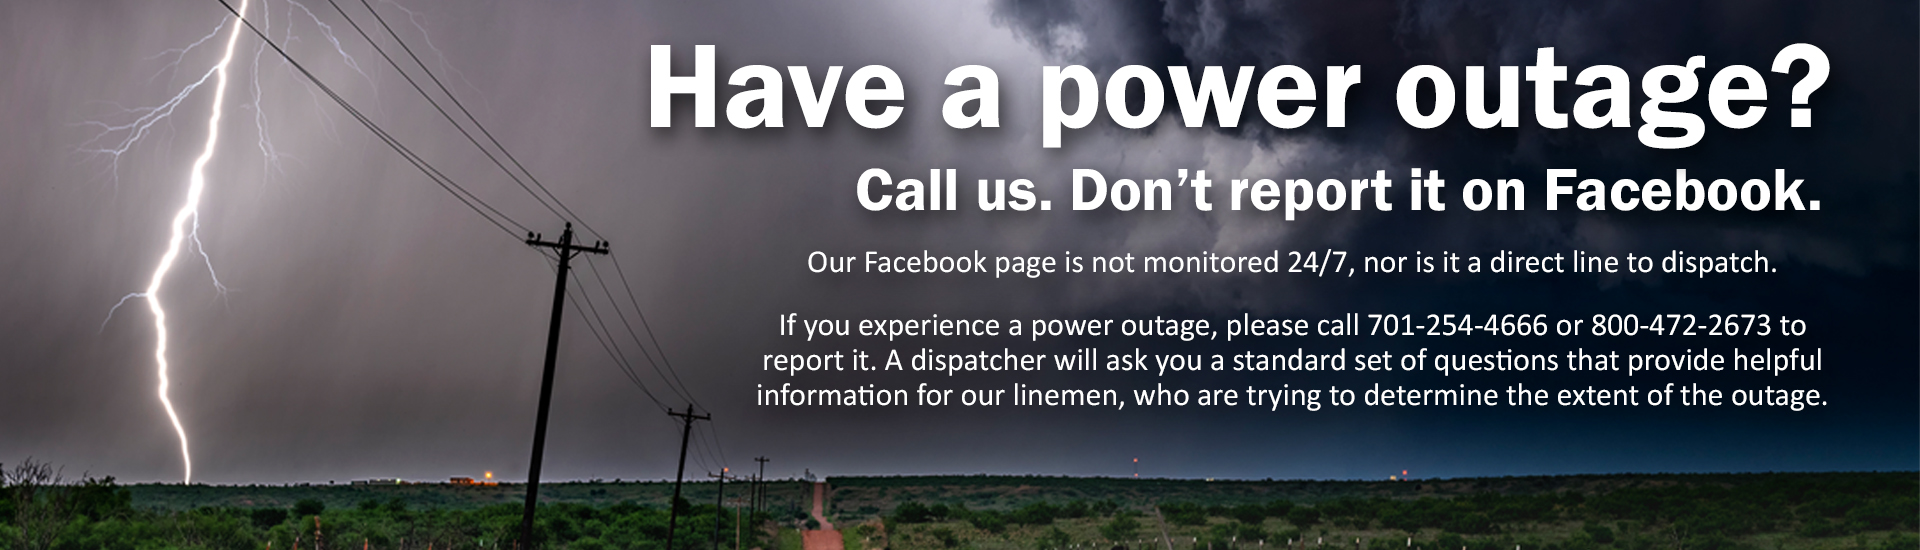 Call 701-254-4666 or 800-472-2673 to report a power outage